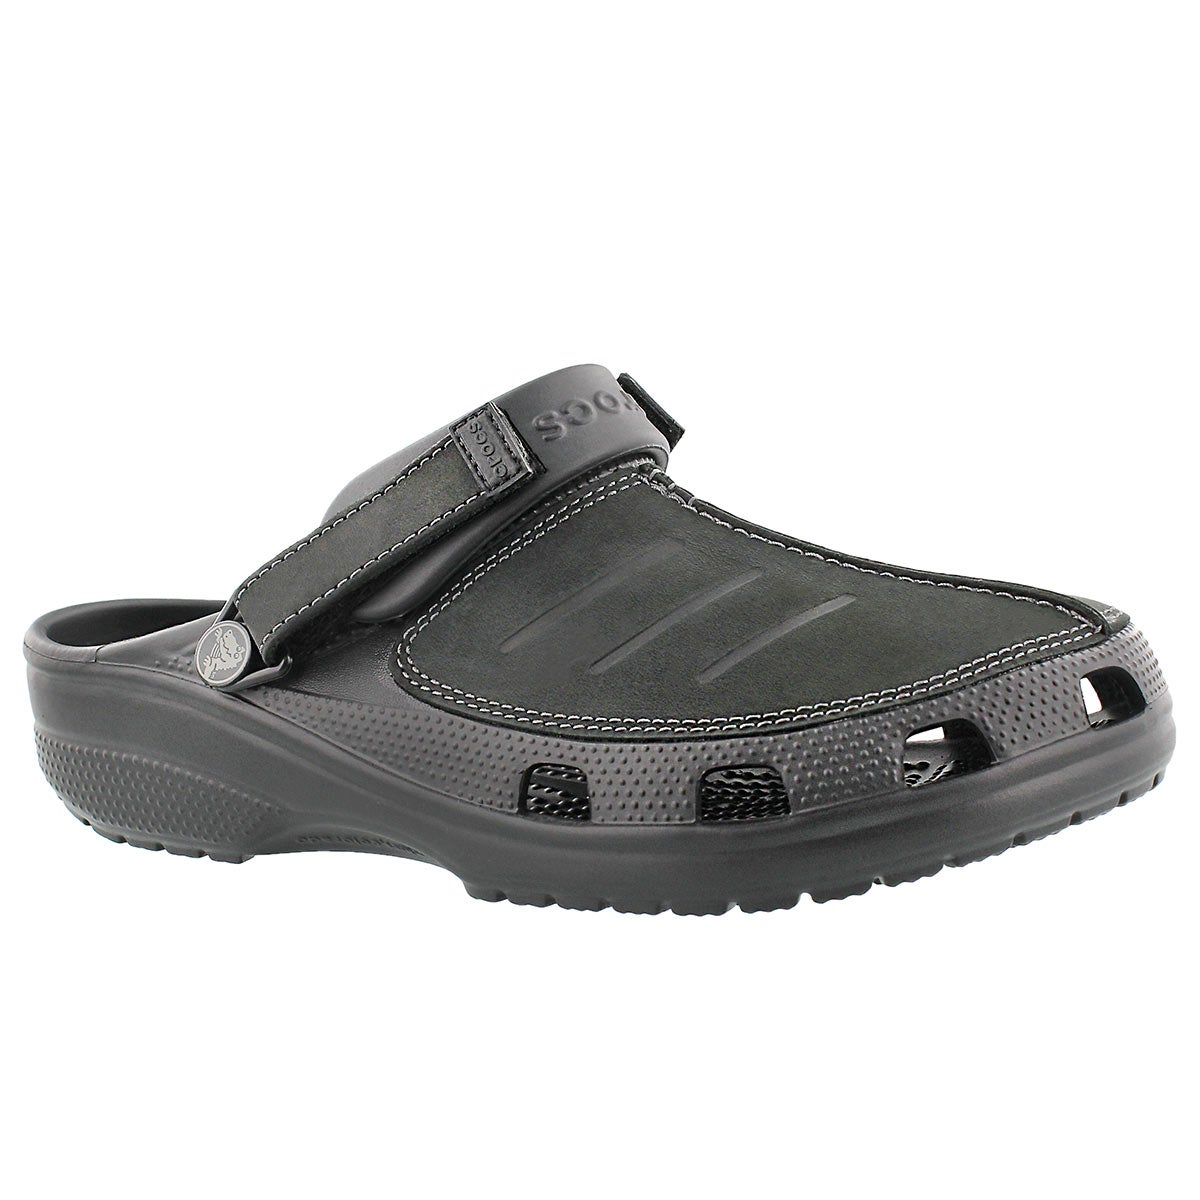 Men's YUKON MESA black clogs